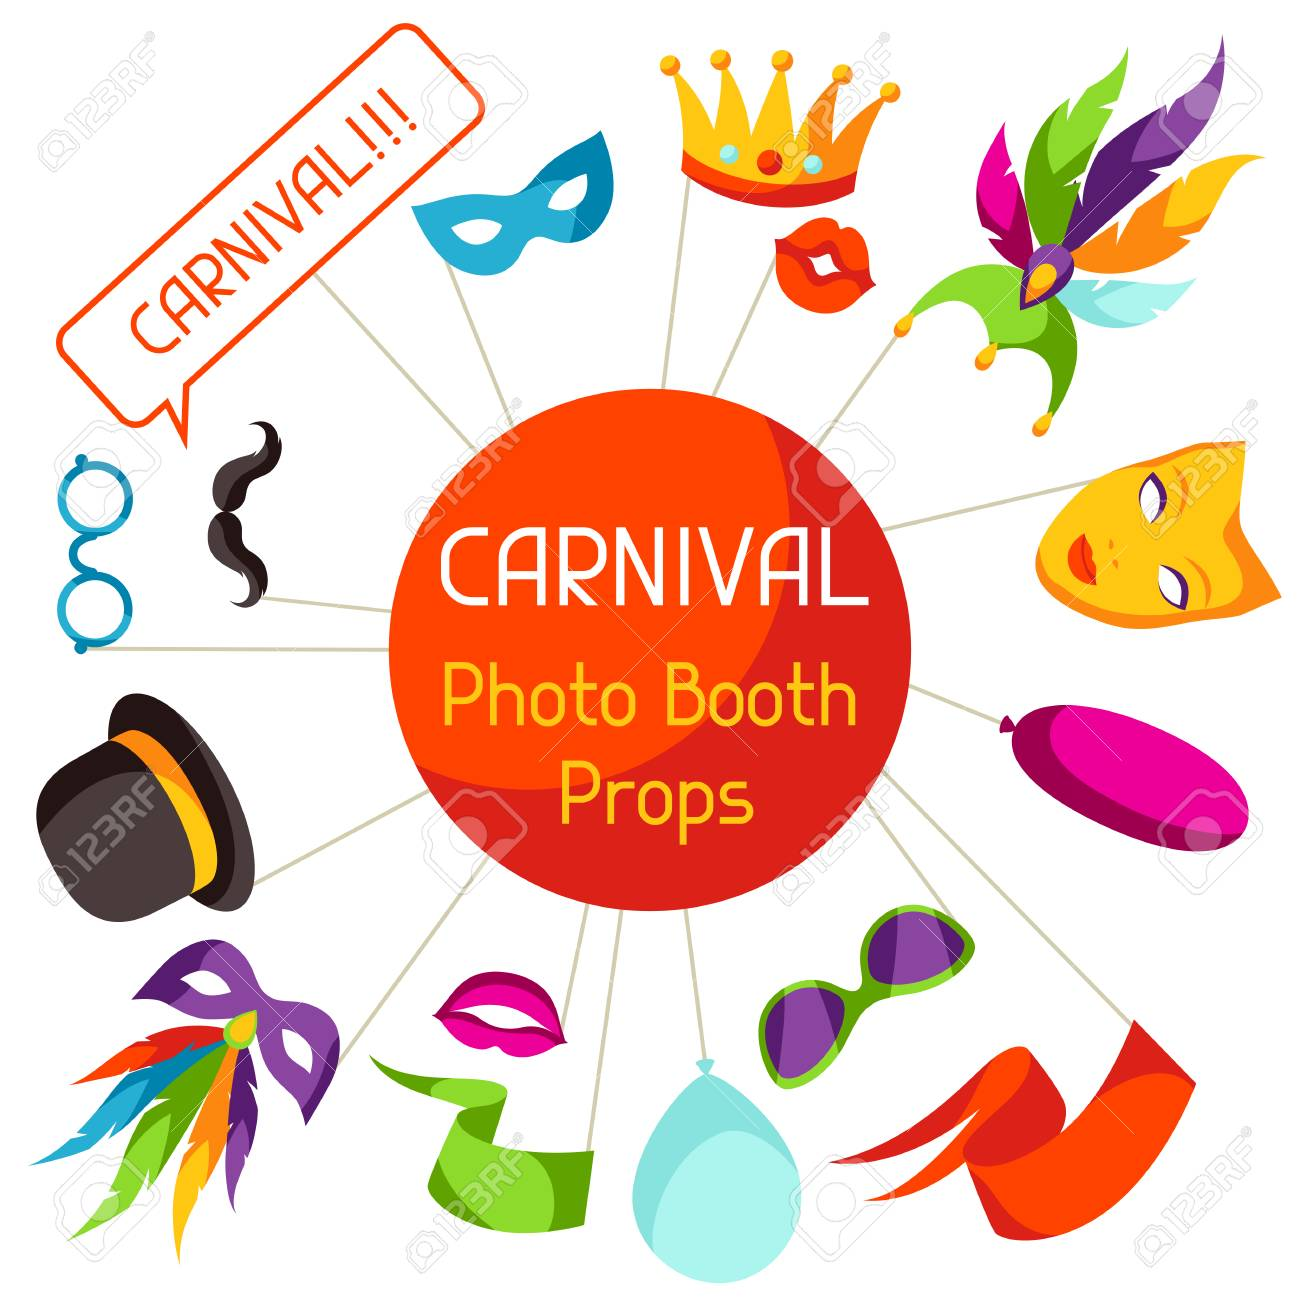 Carnival Photo Booth Props Accessories For Festival And Party